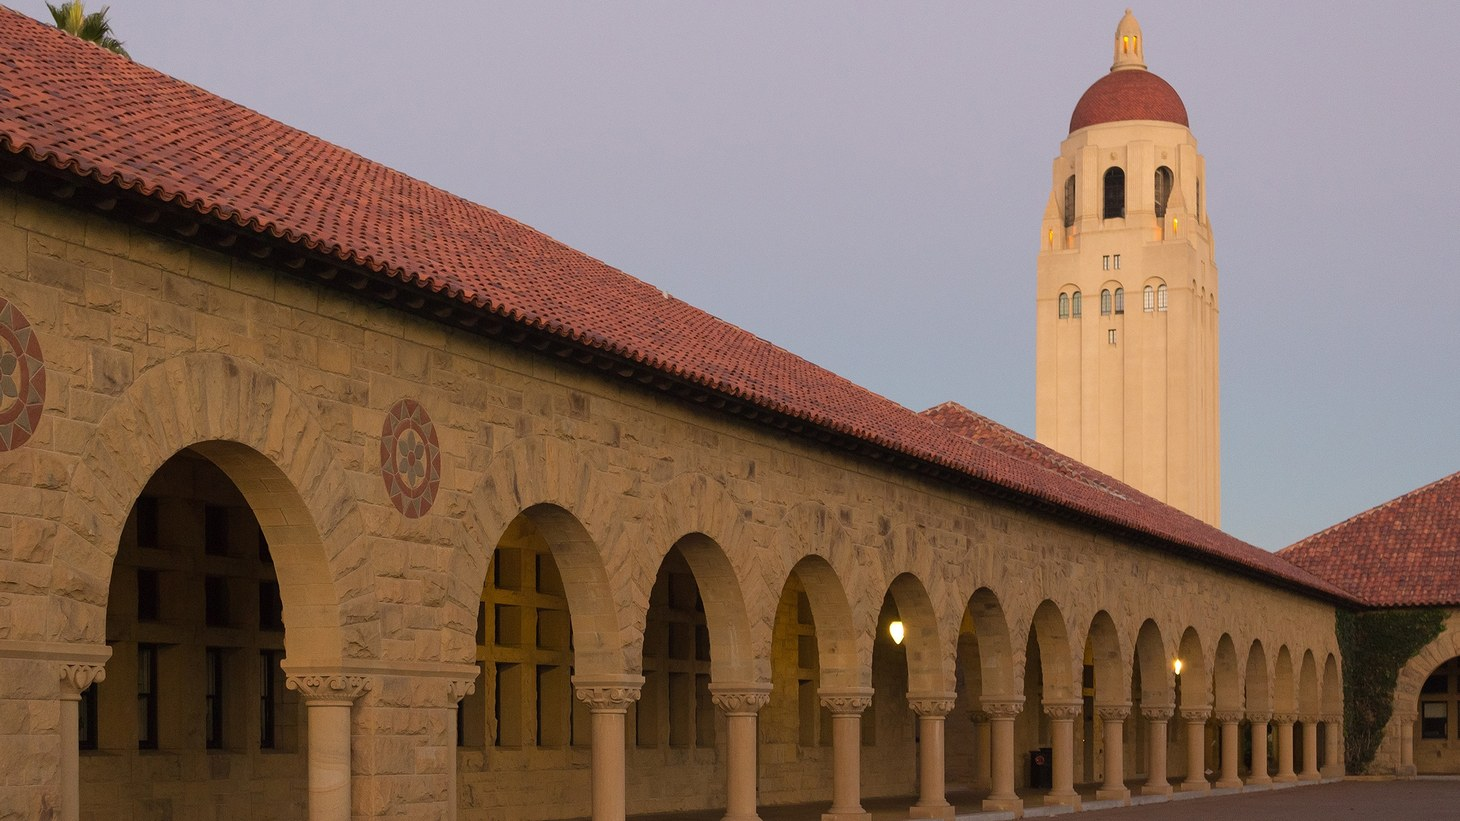 Stanford's Hoover Tower.